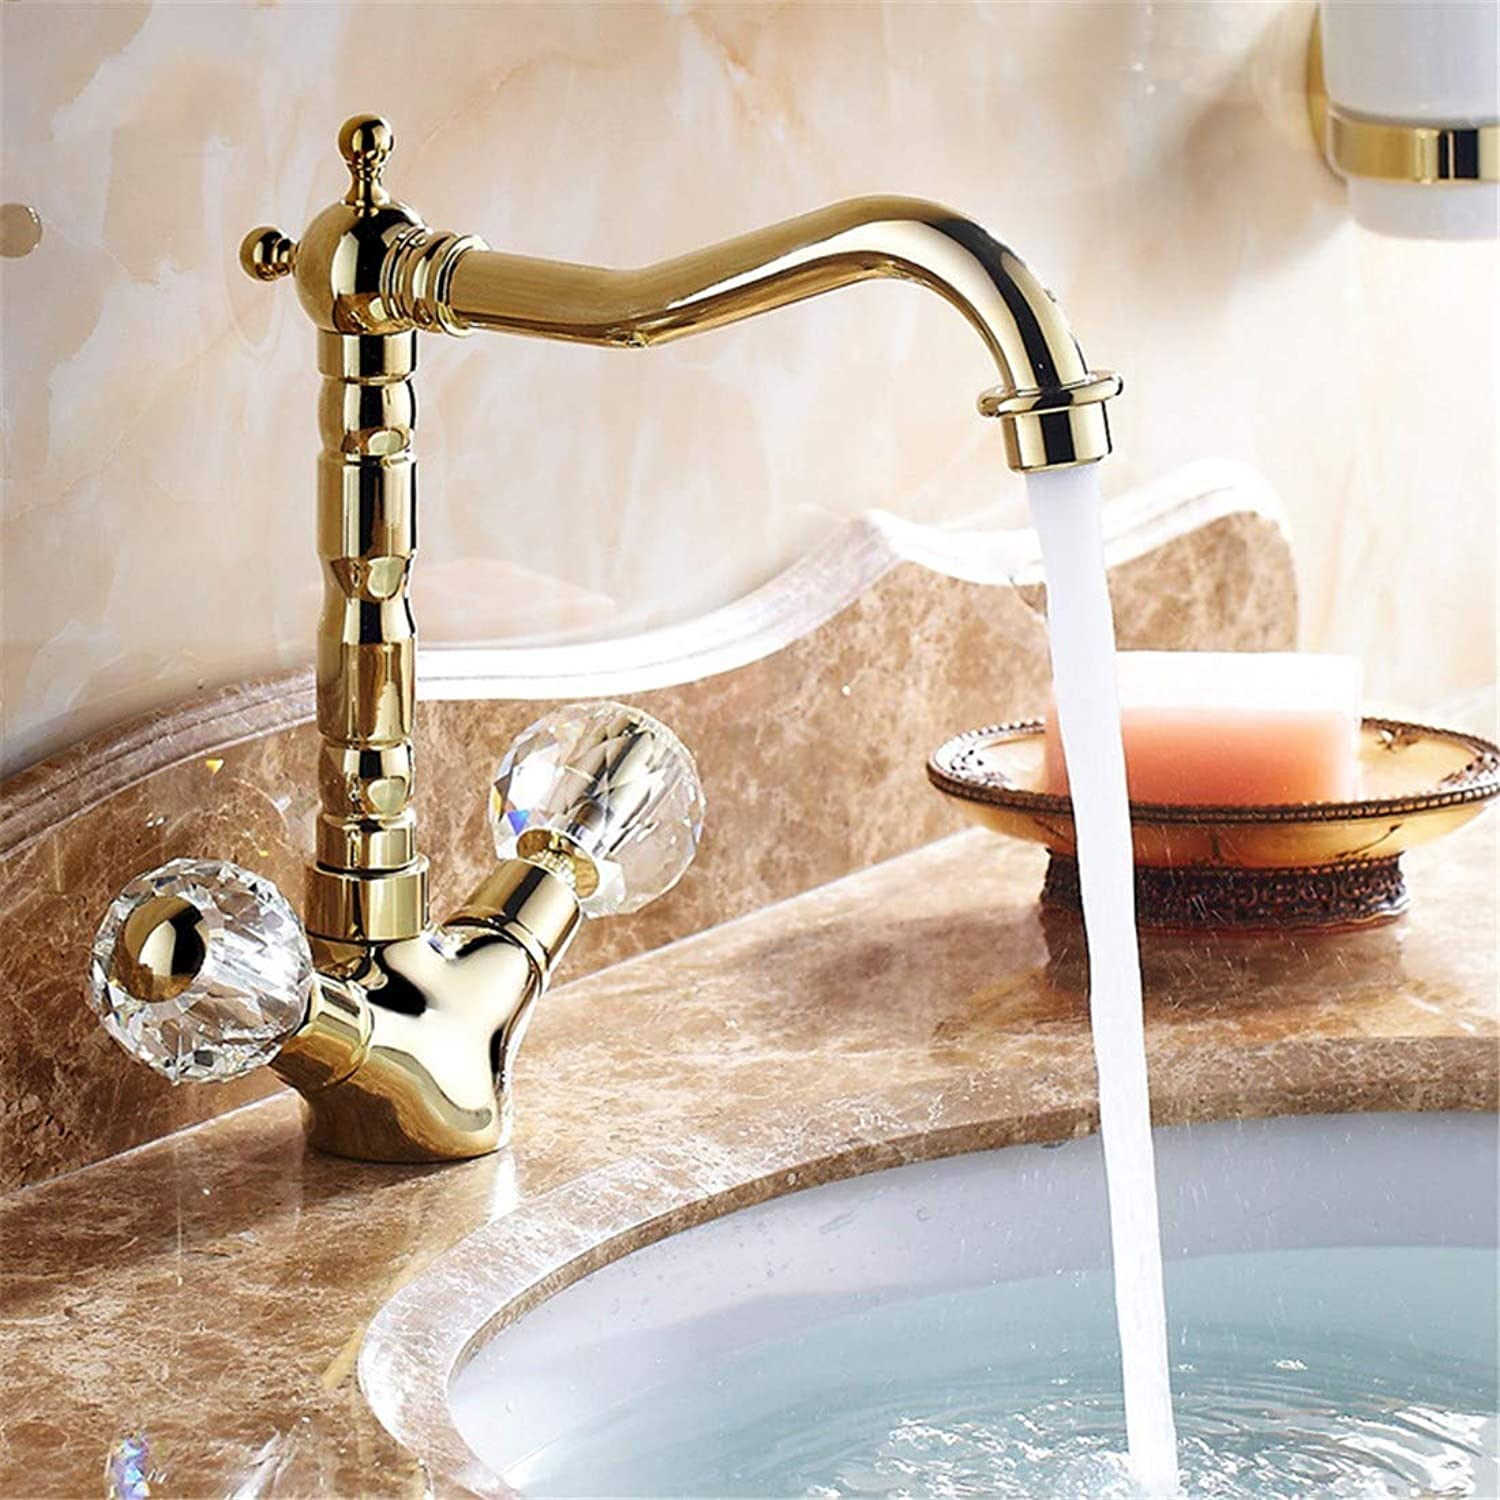 Oudan The American continental full copper kitchen faucet redation pink gold countertop basin gold, and all the copper basin kitchen sink cold water taps pink gold (color   2)